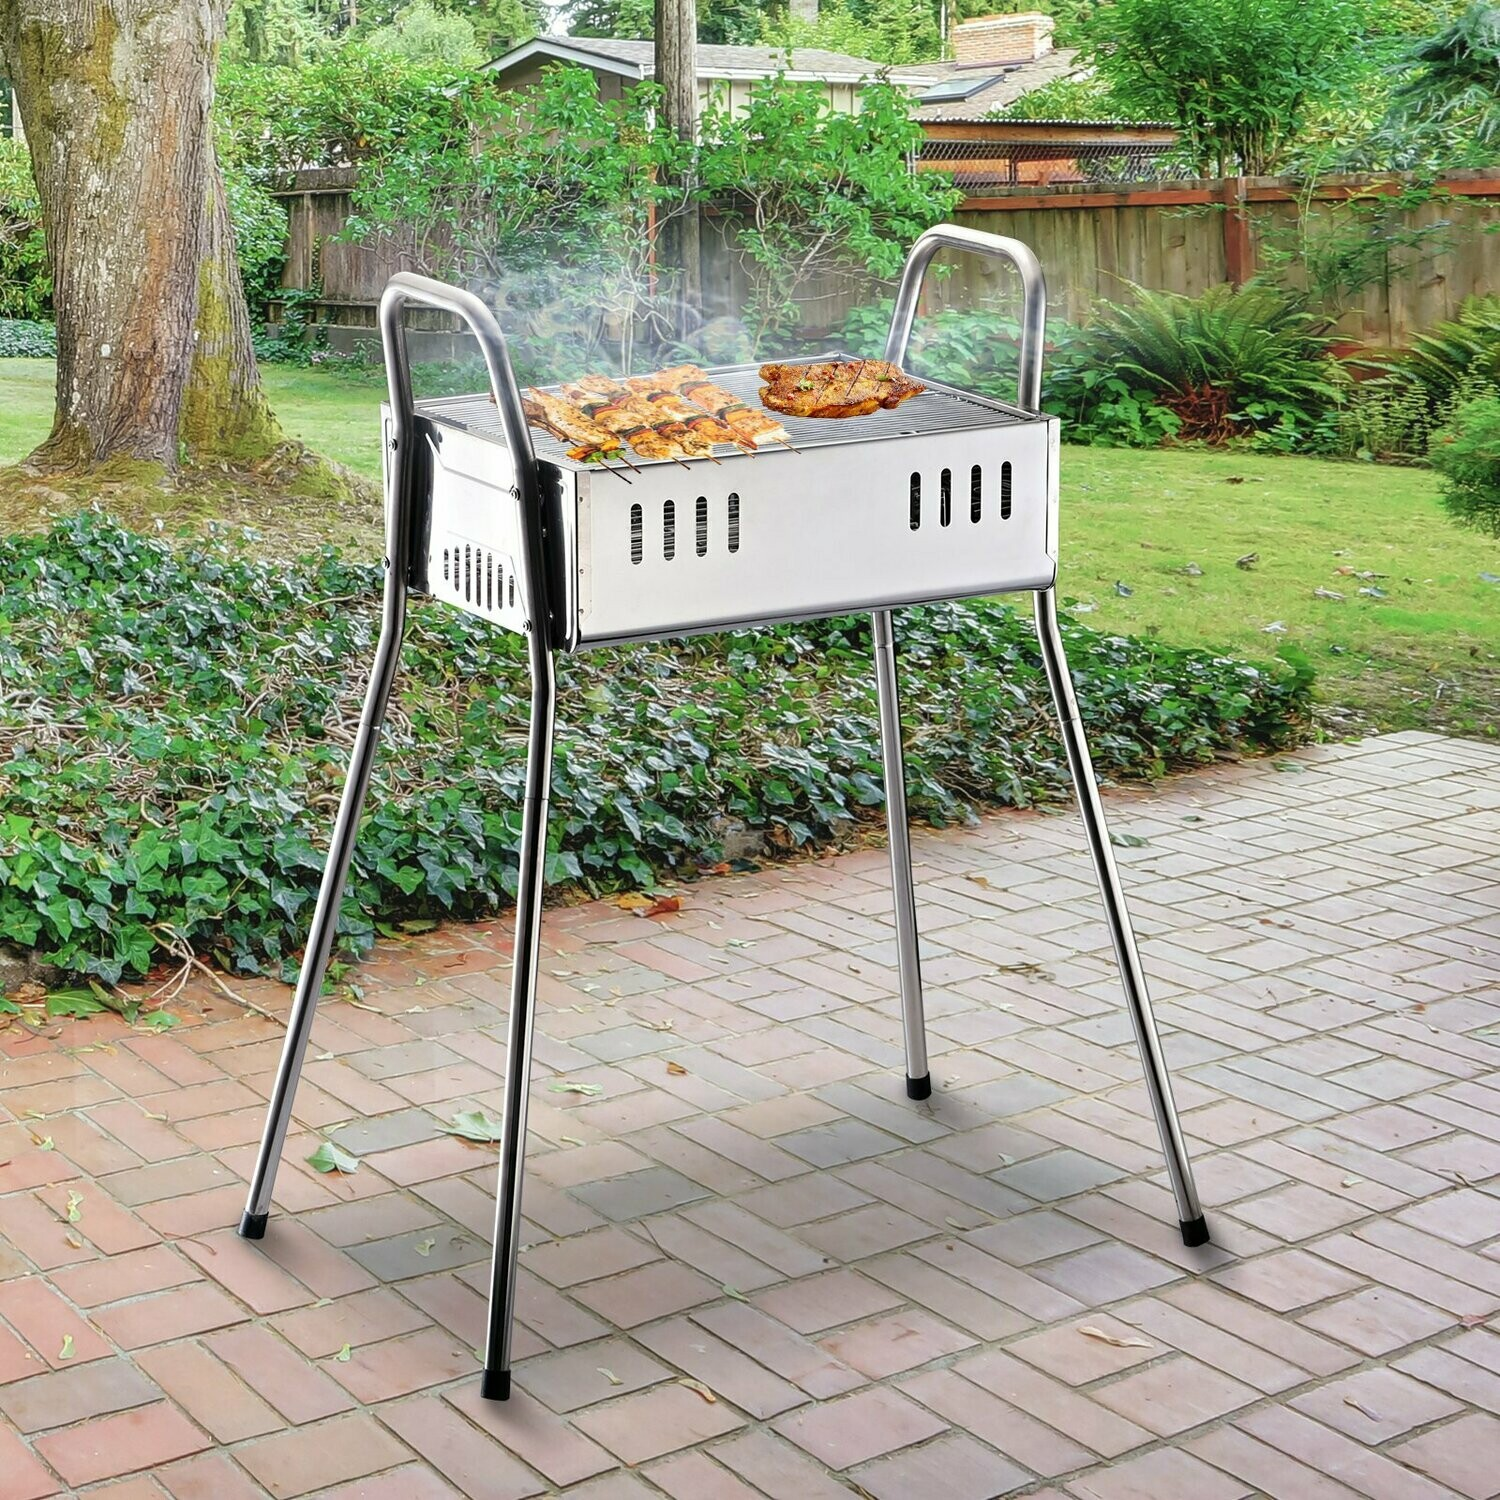 Outsunny Holzkohlegrill, Standgrill, Abnehmbare Beine, Edelstahl, Silber